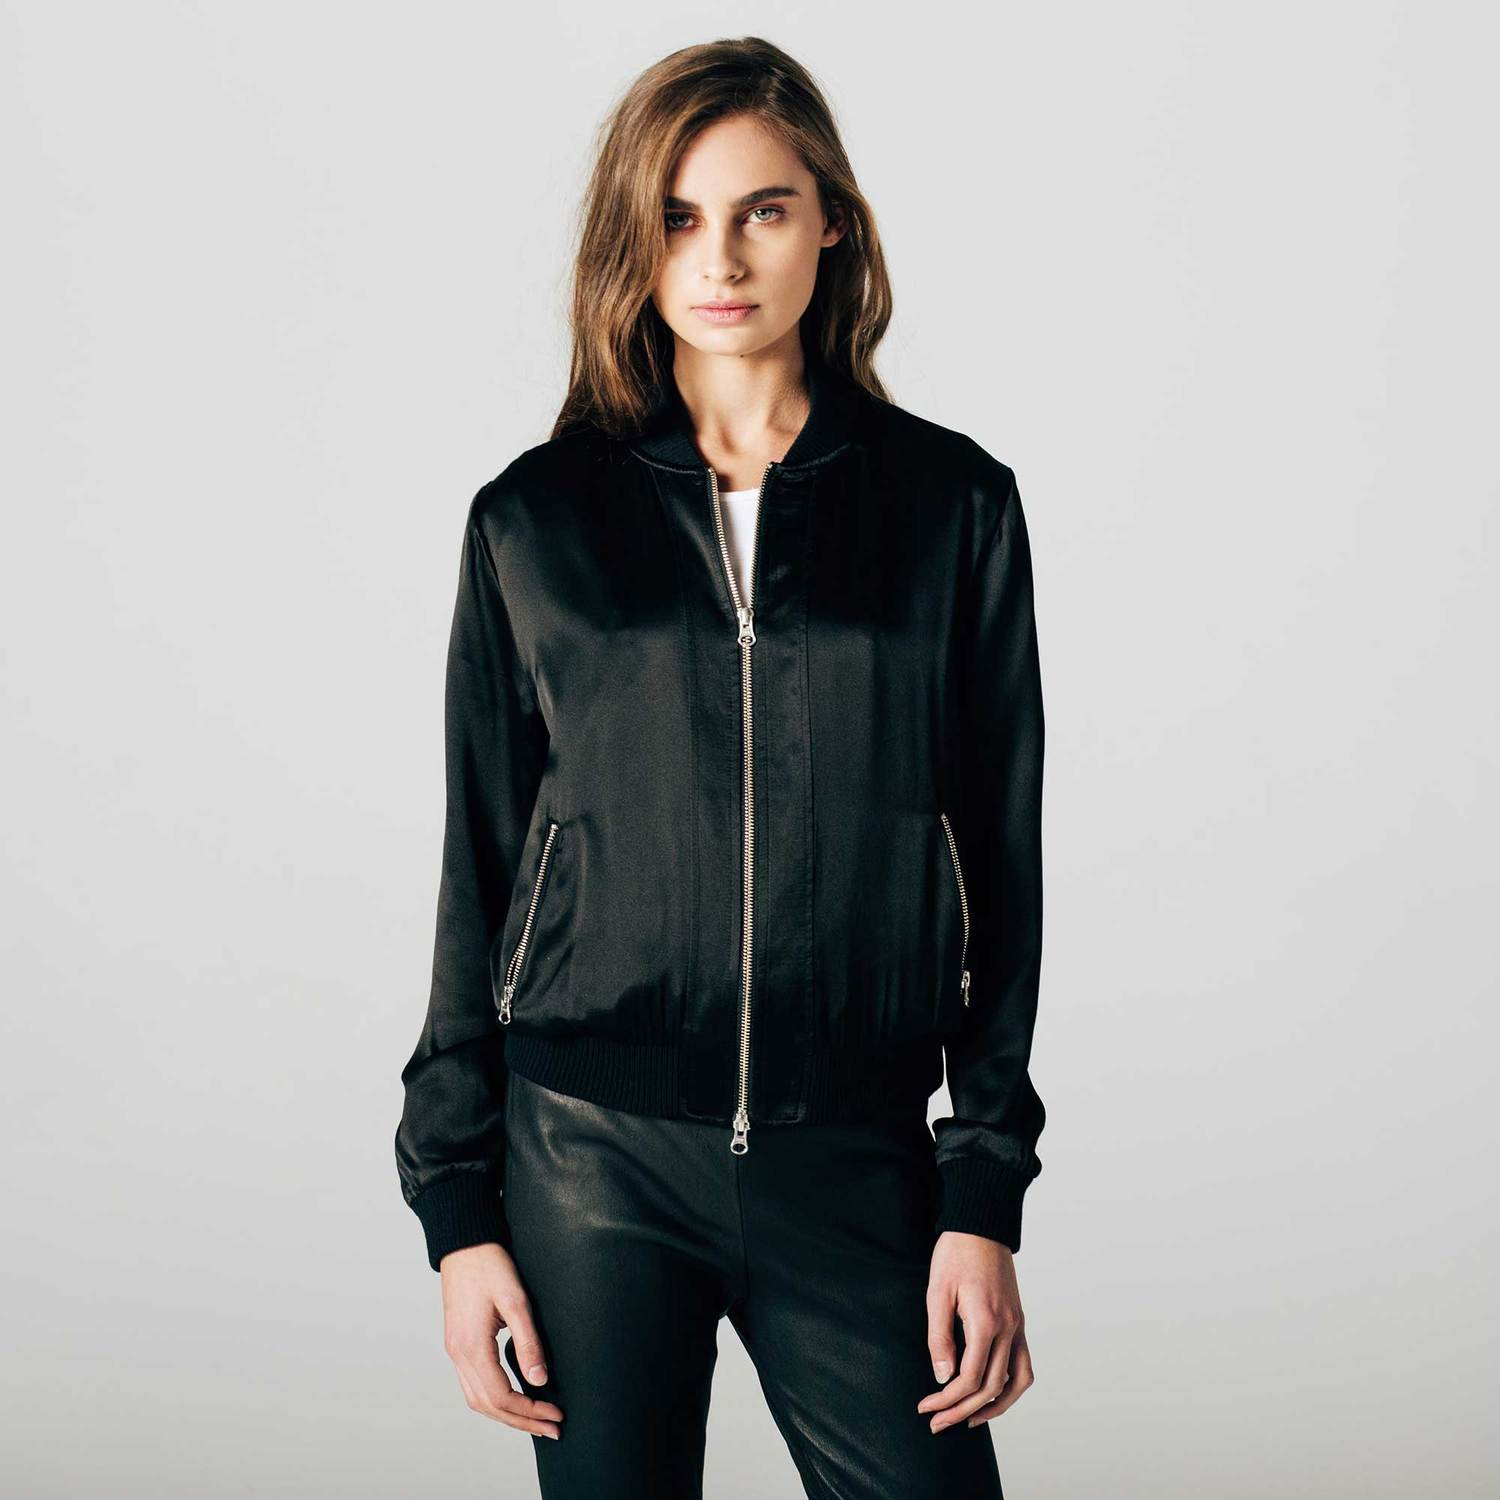 Womens Silk Bomber Jacket In Black $125 | DSTLD